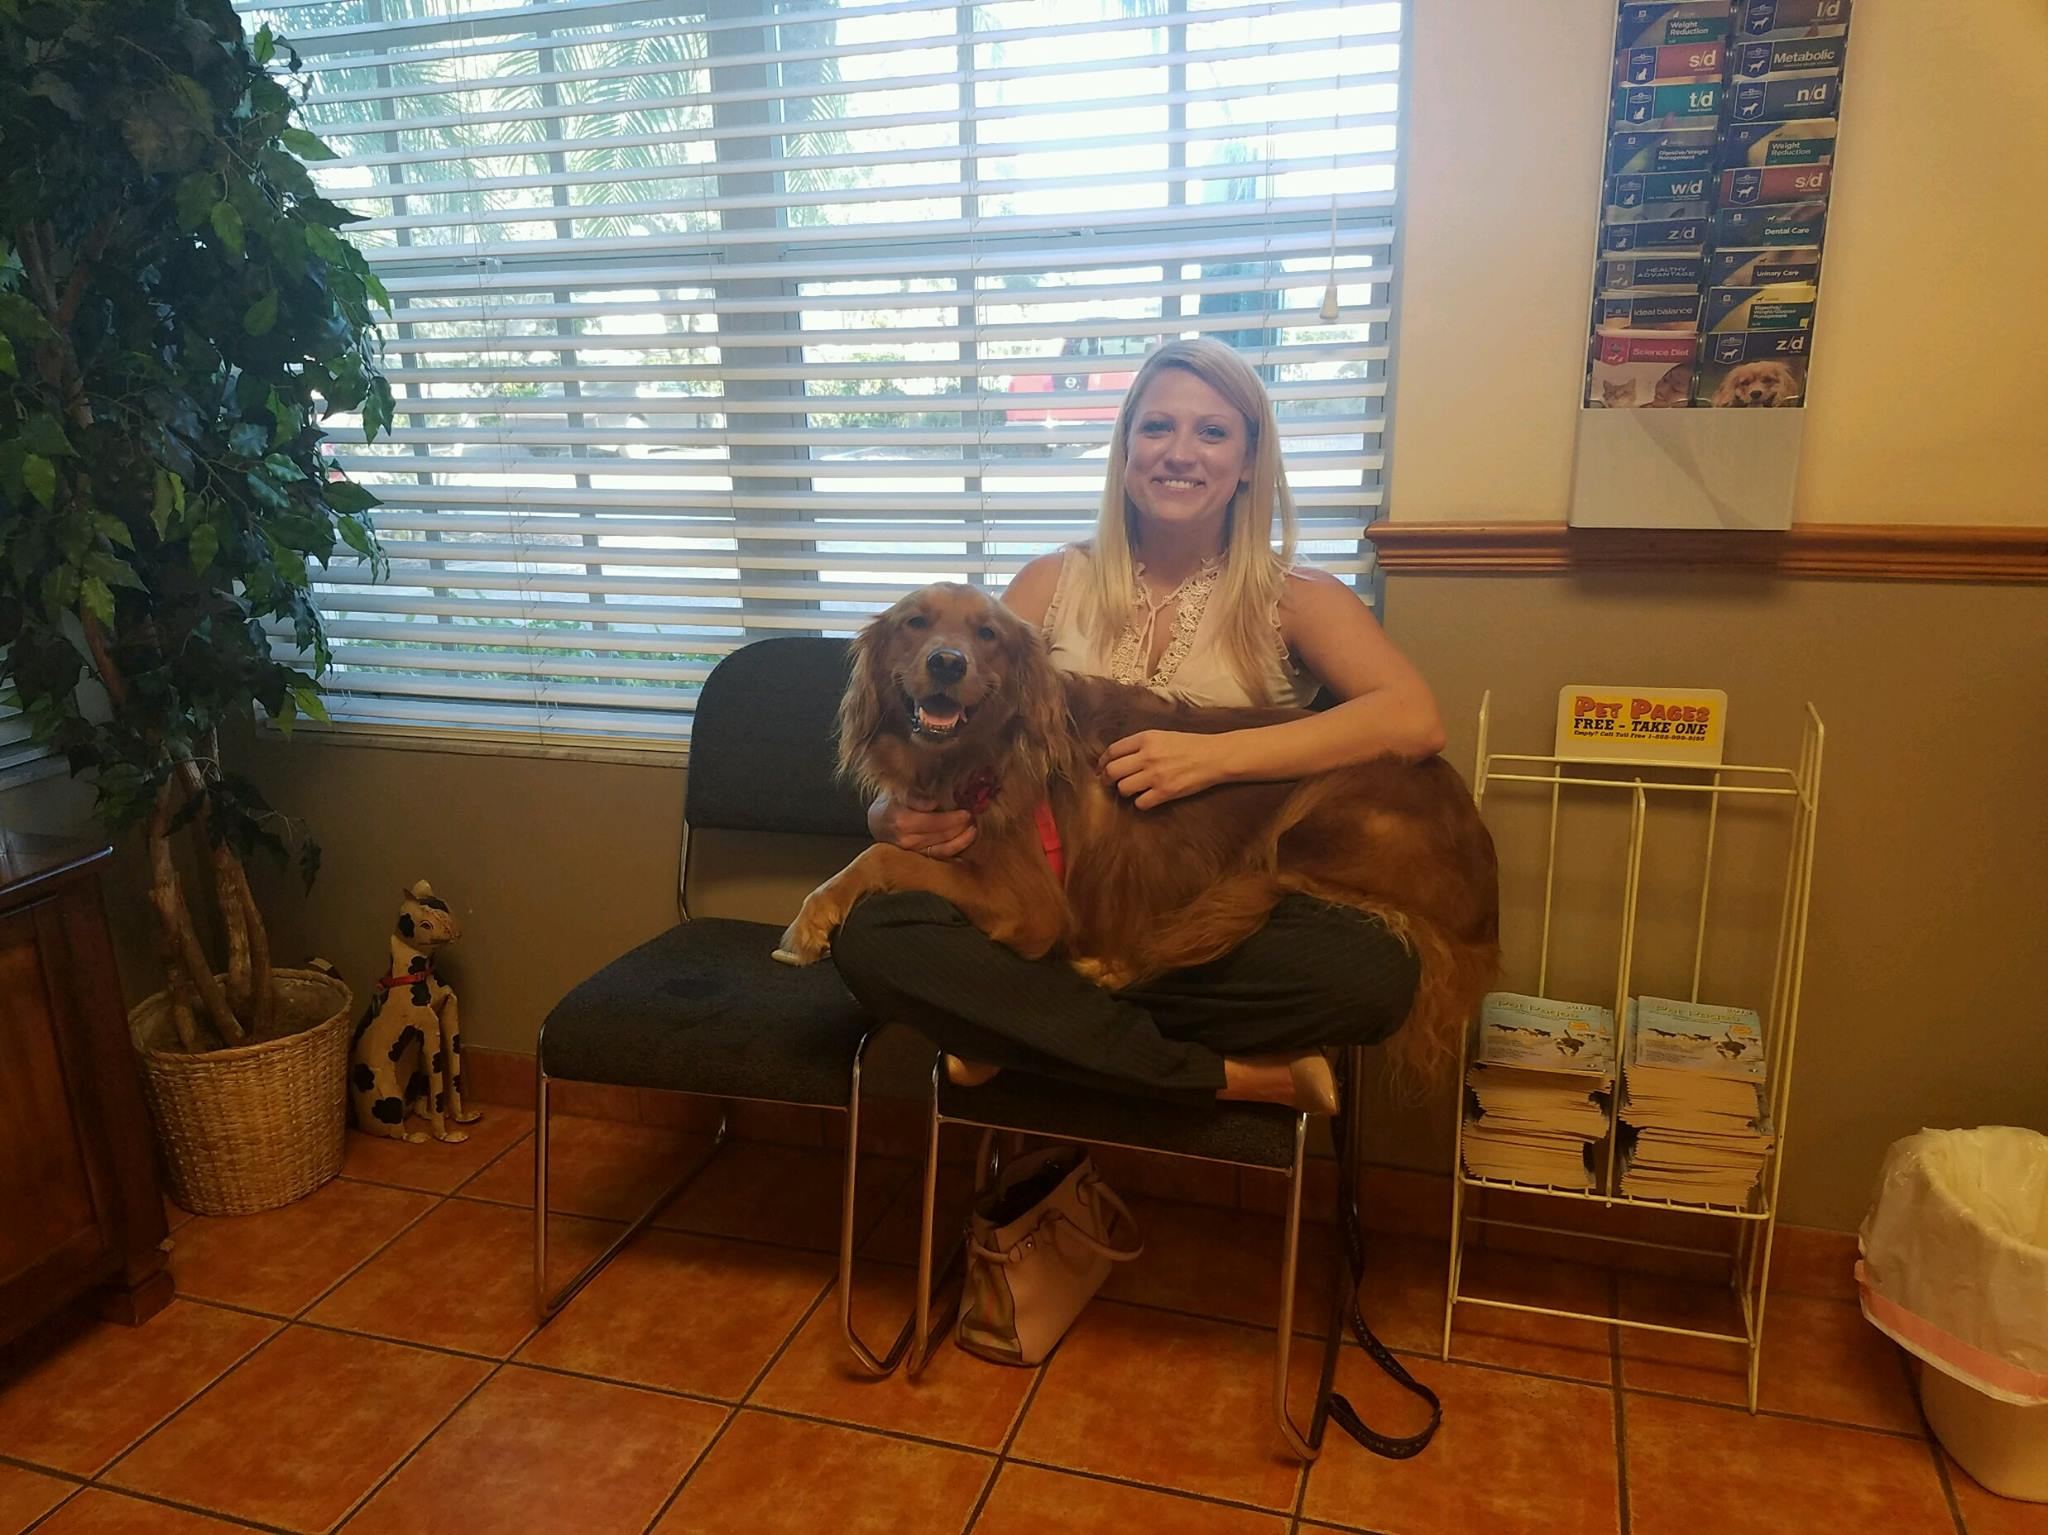 Luna, who is one of the participants in the Golden Retriever Lifetime study, sits in her owner's lap before her appointment.